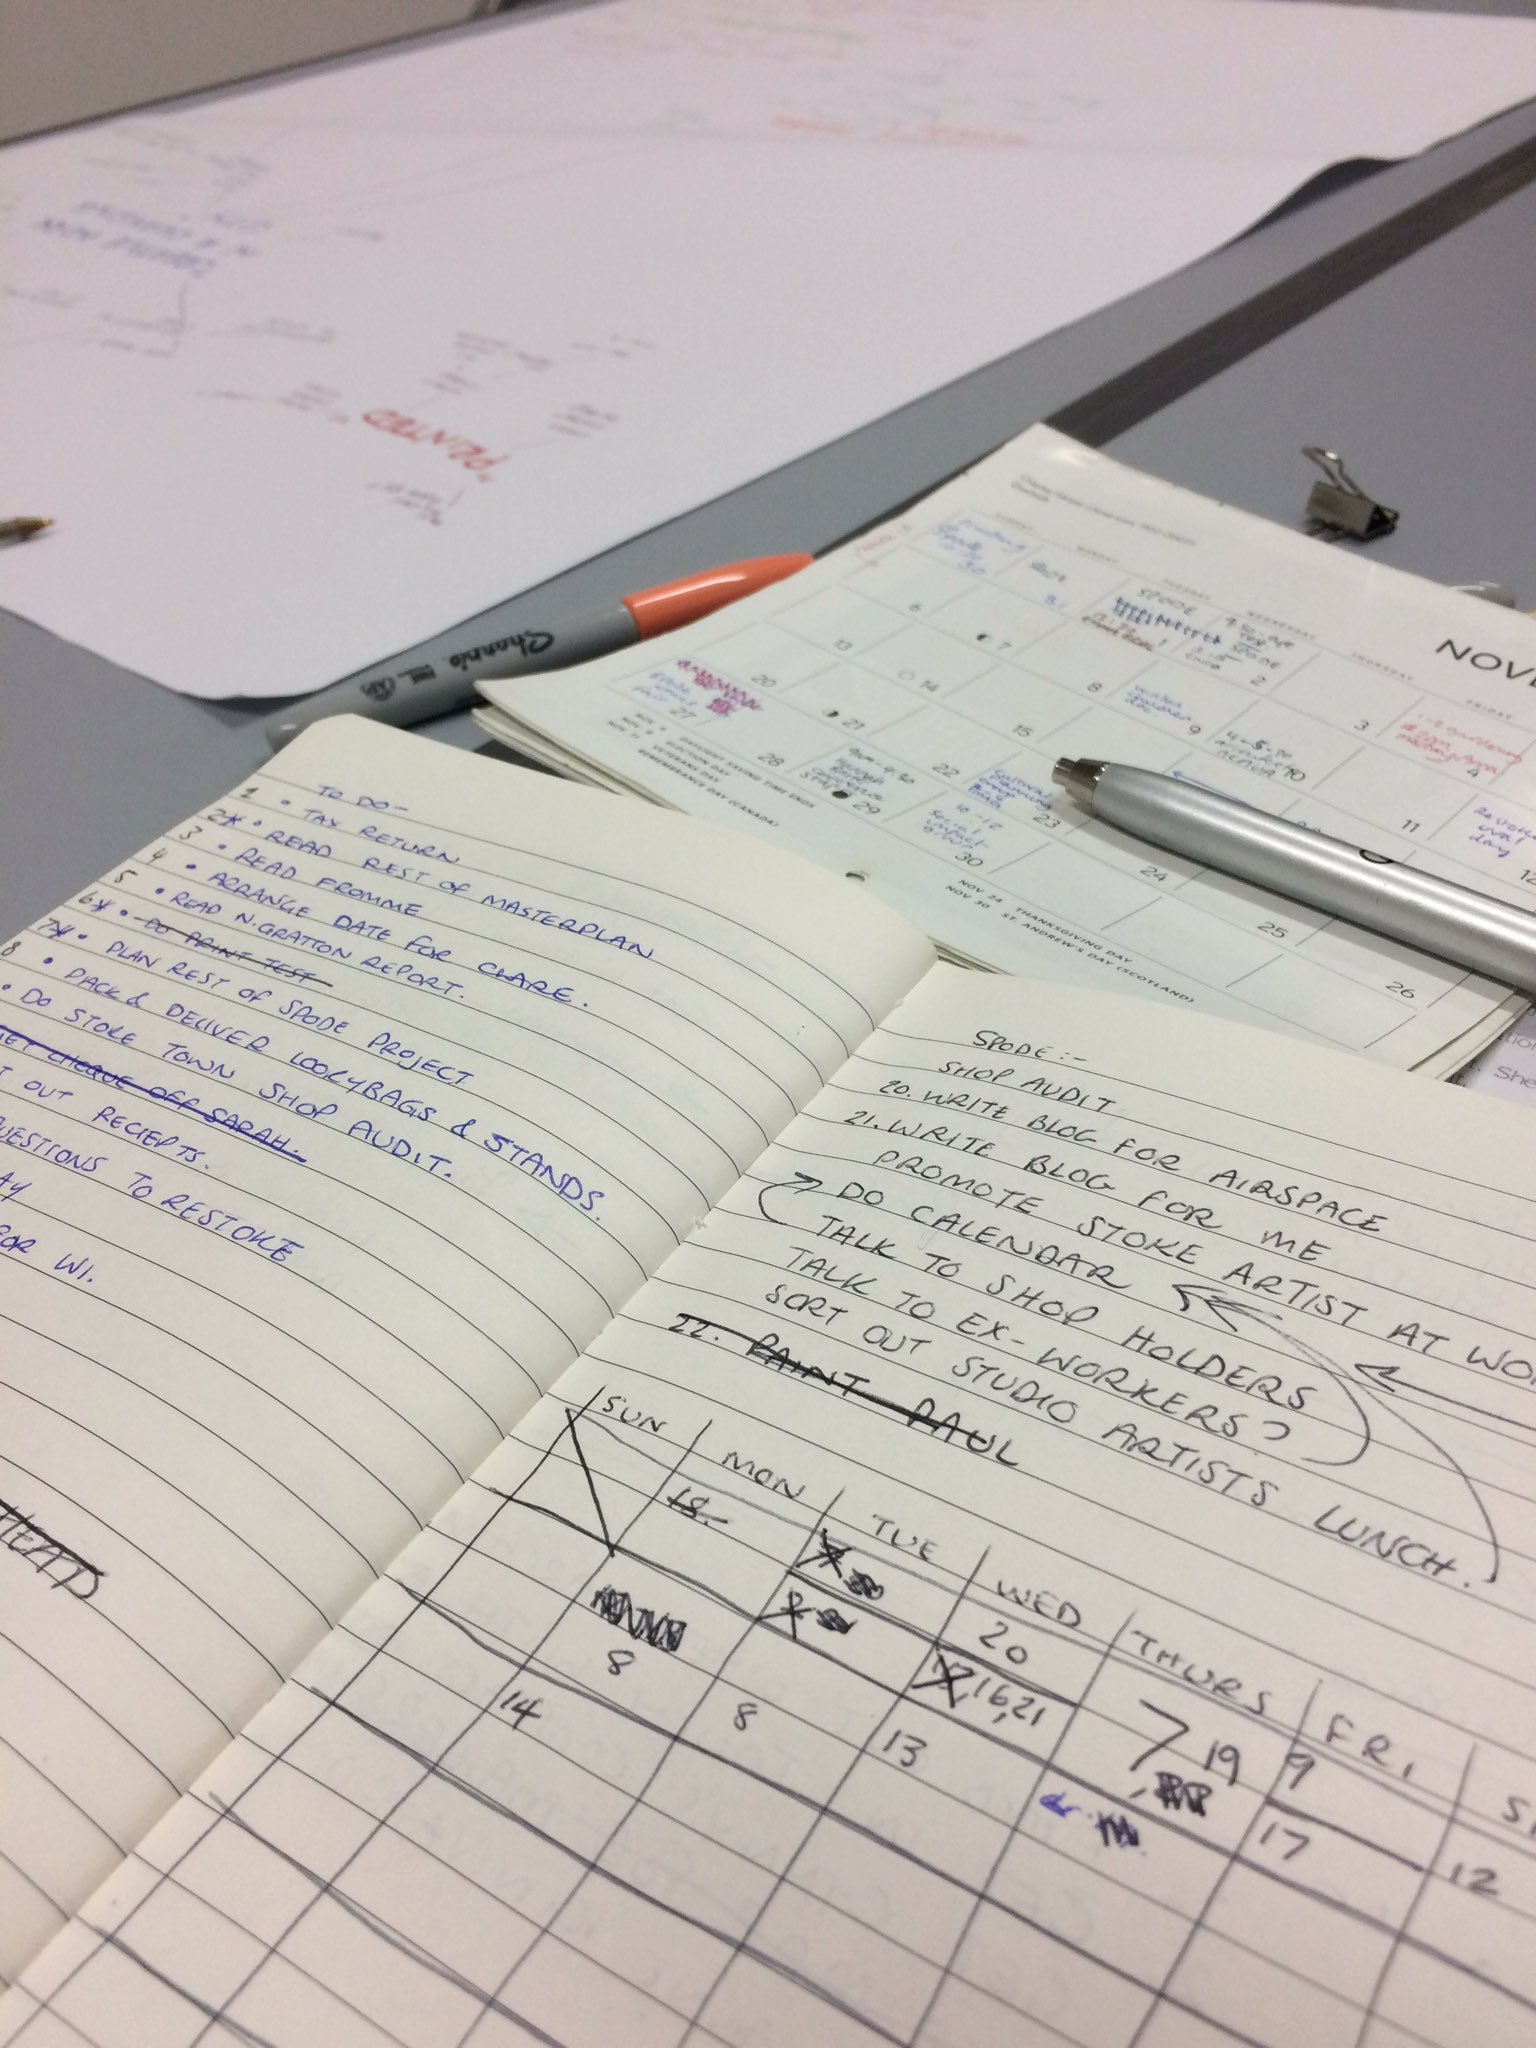 5-6: all this talk and discovery leads to a whole lot of list making, planning and arranging #listmaking #nextstep #stokeartistatwork https://t.co/ILFYbGT2mE